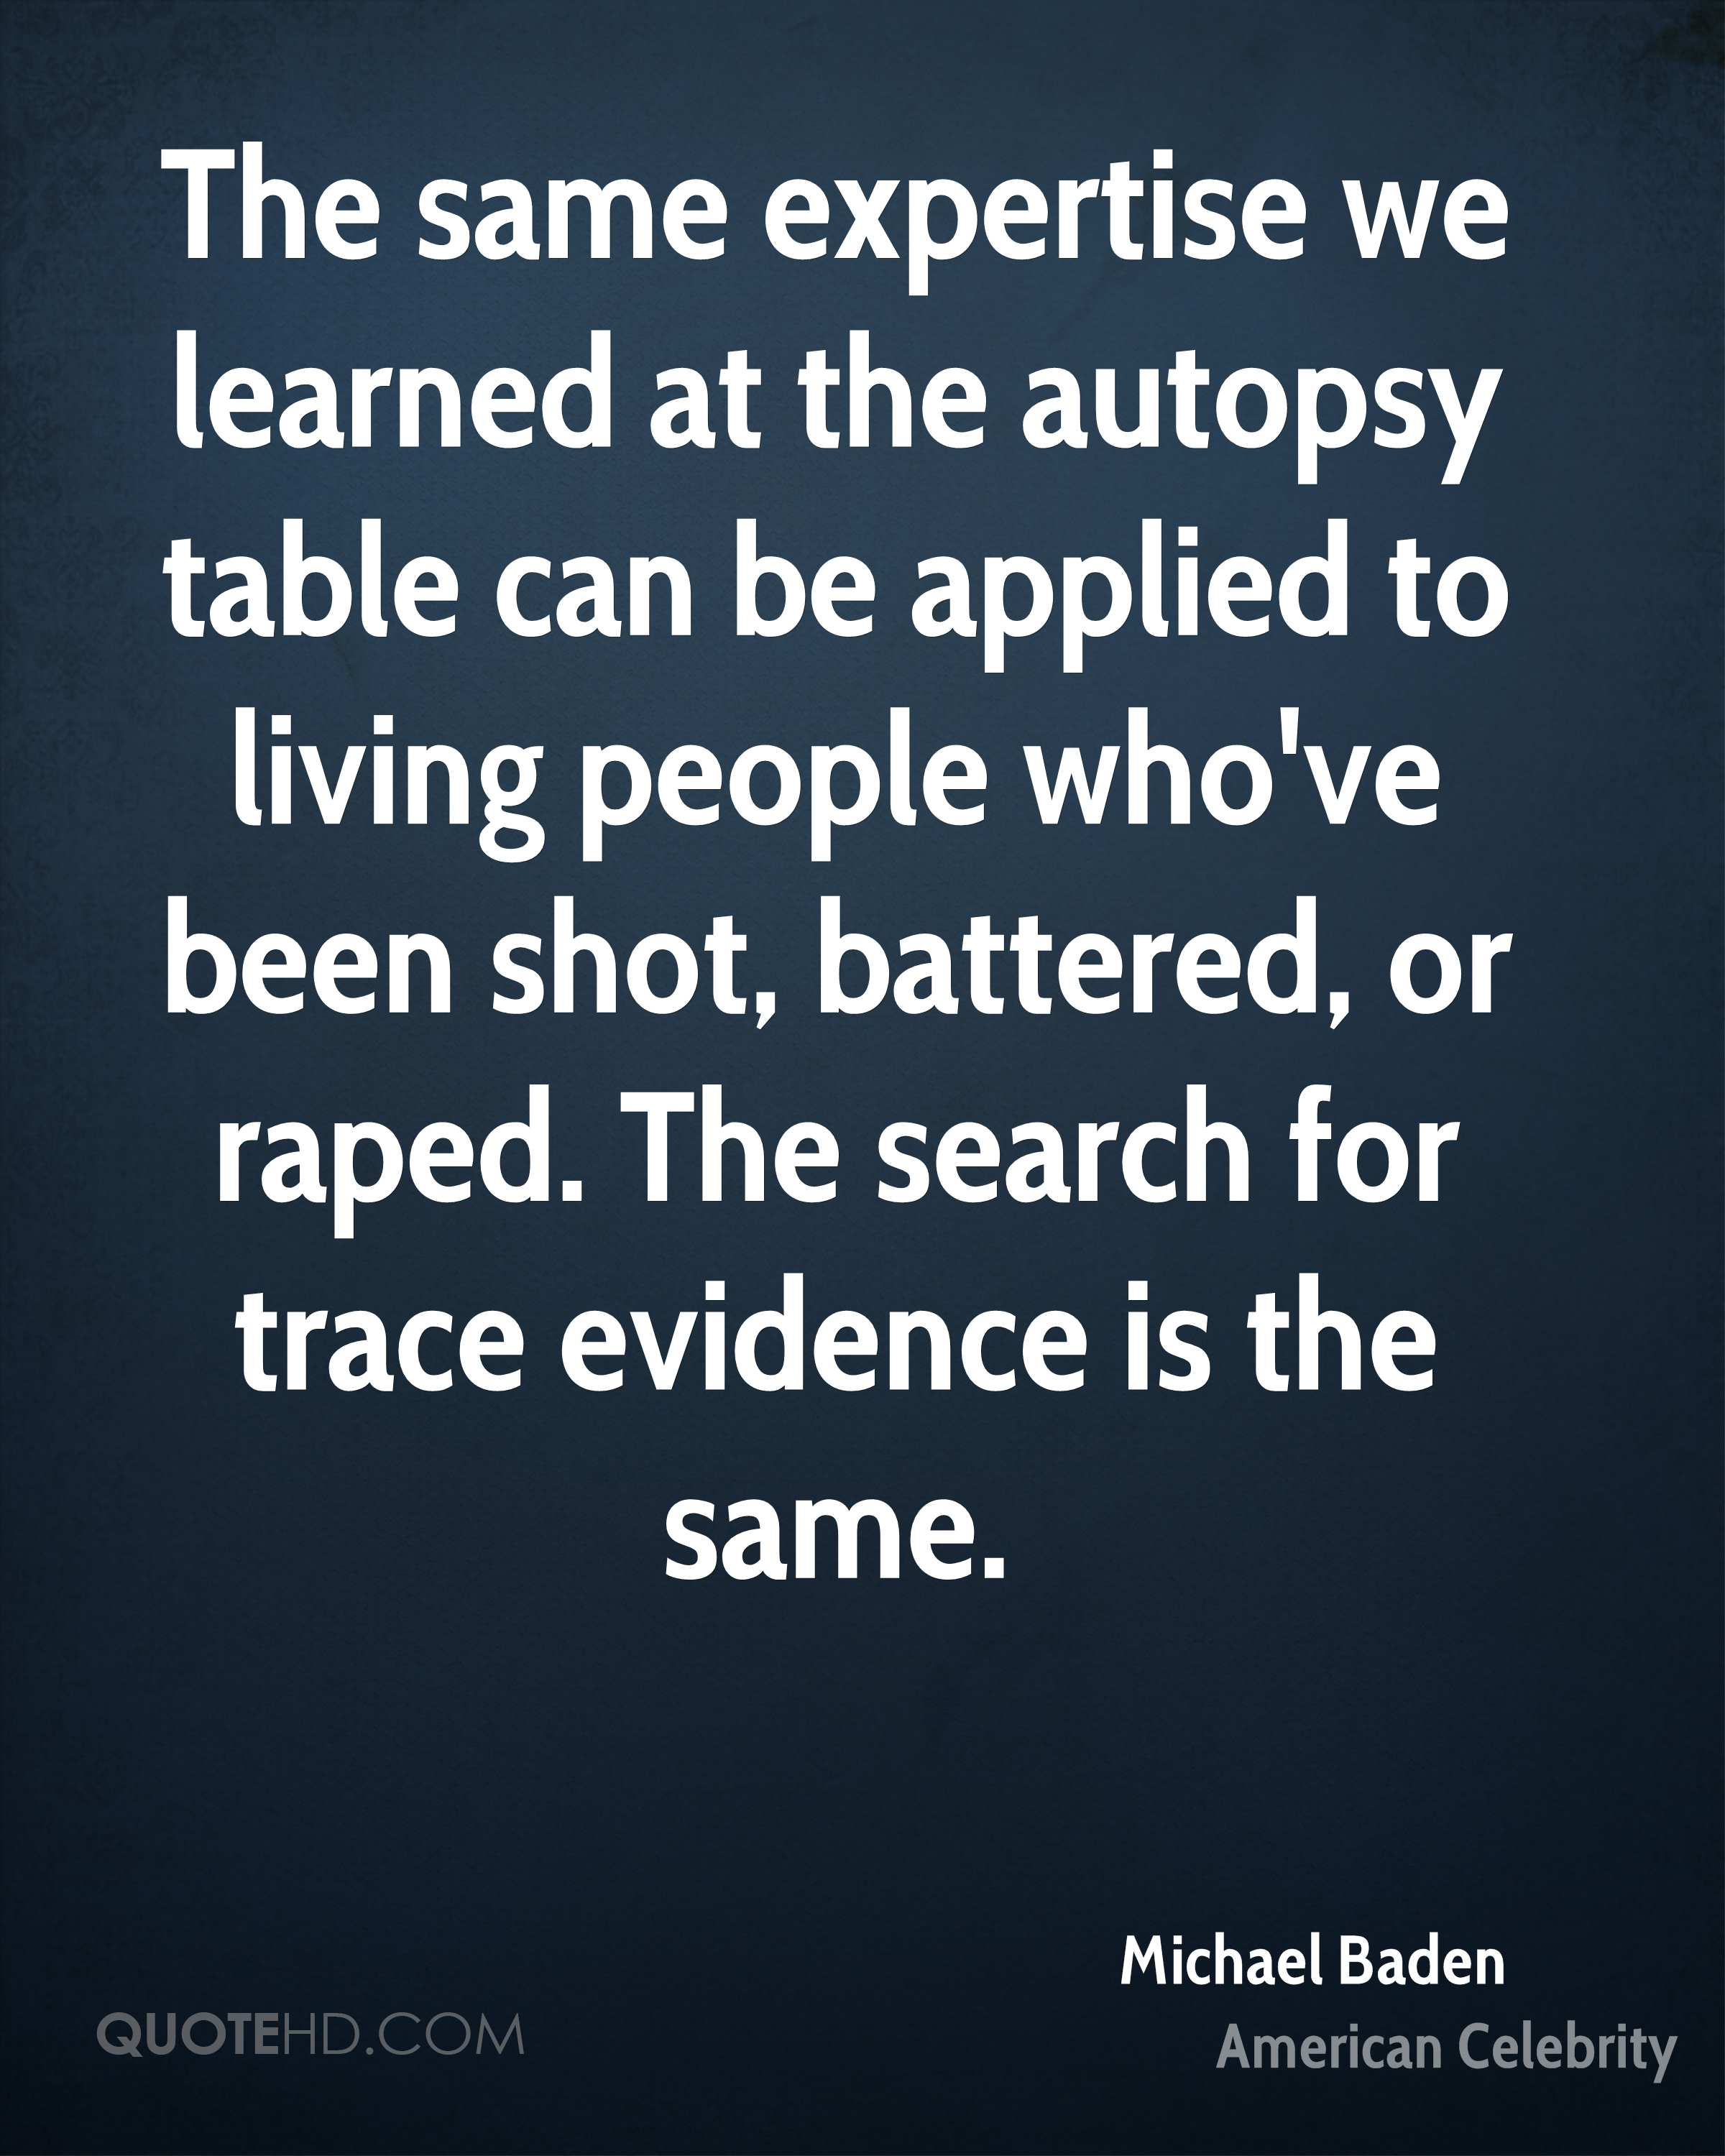 The same expertise we learned at the autopsy table can be applied to living people who've been shot, battered, or raped. The search for trace evidence is the same.